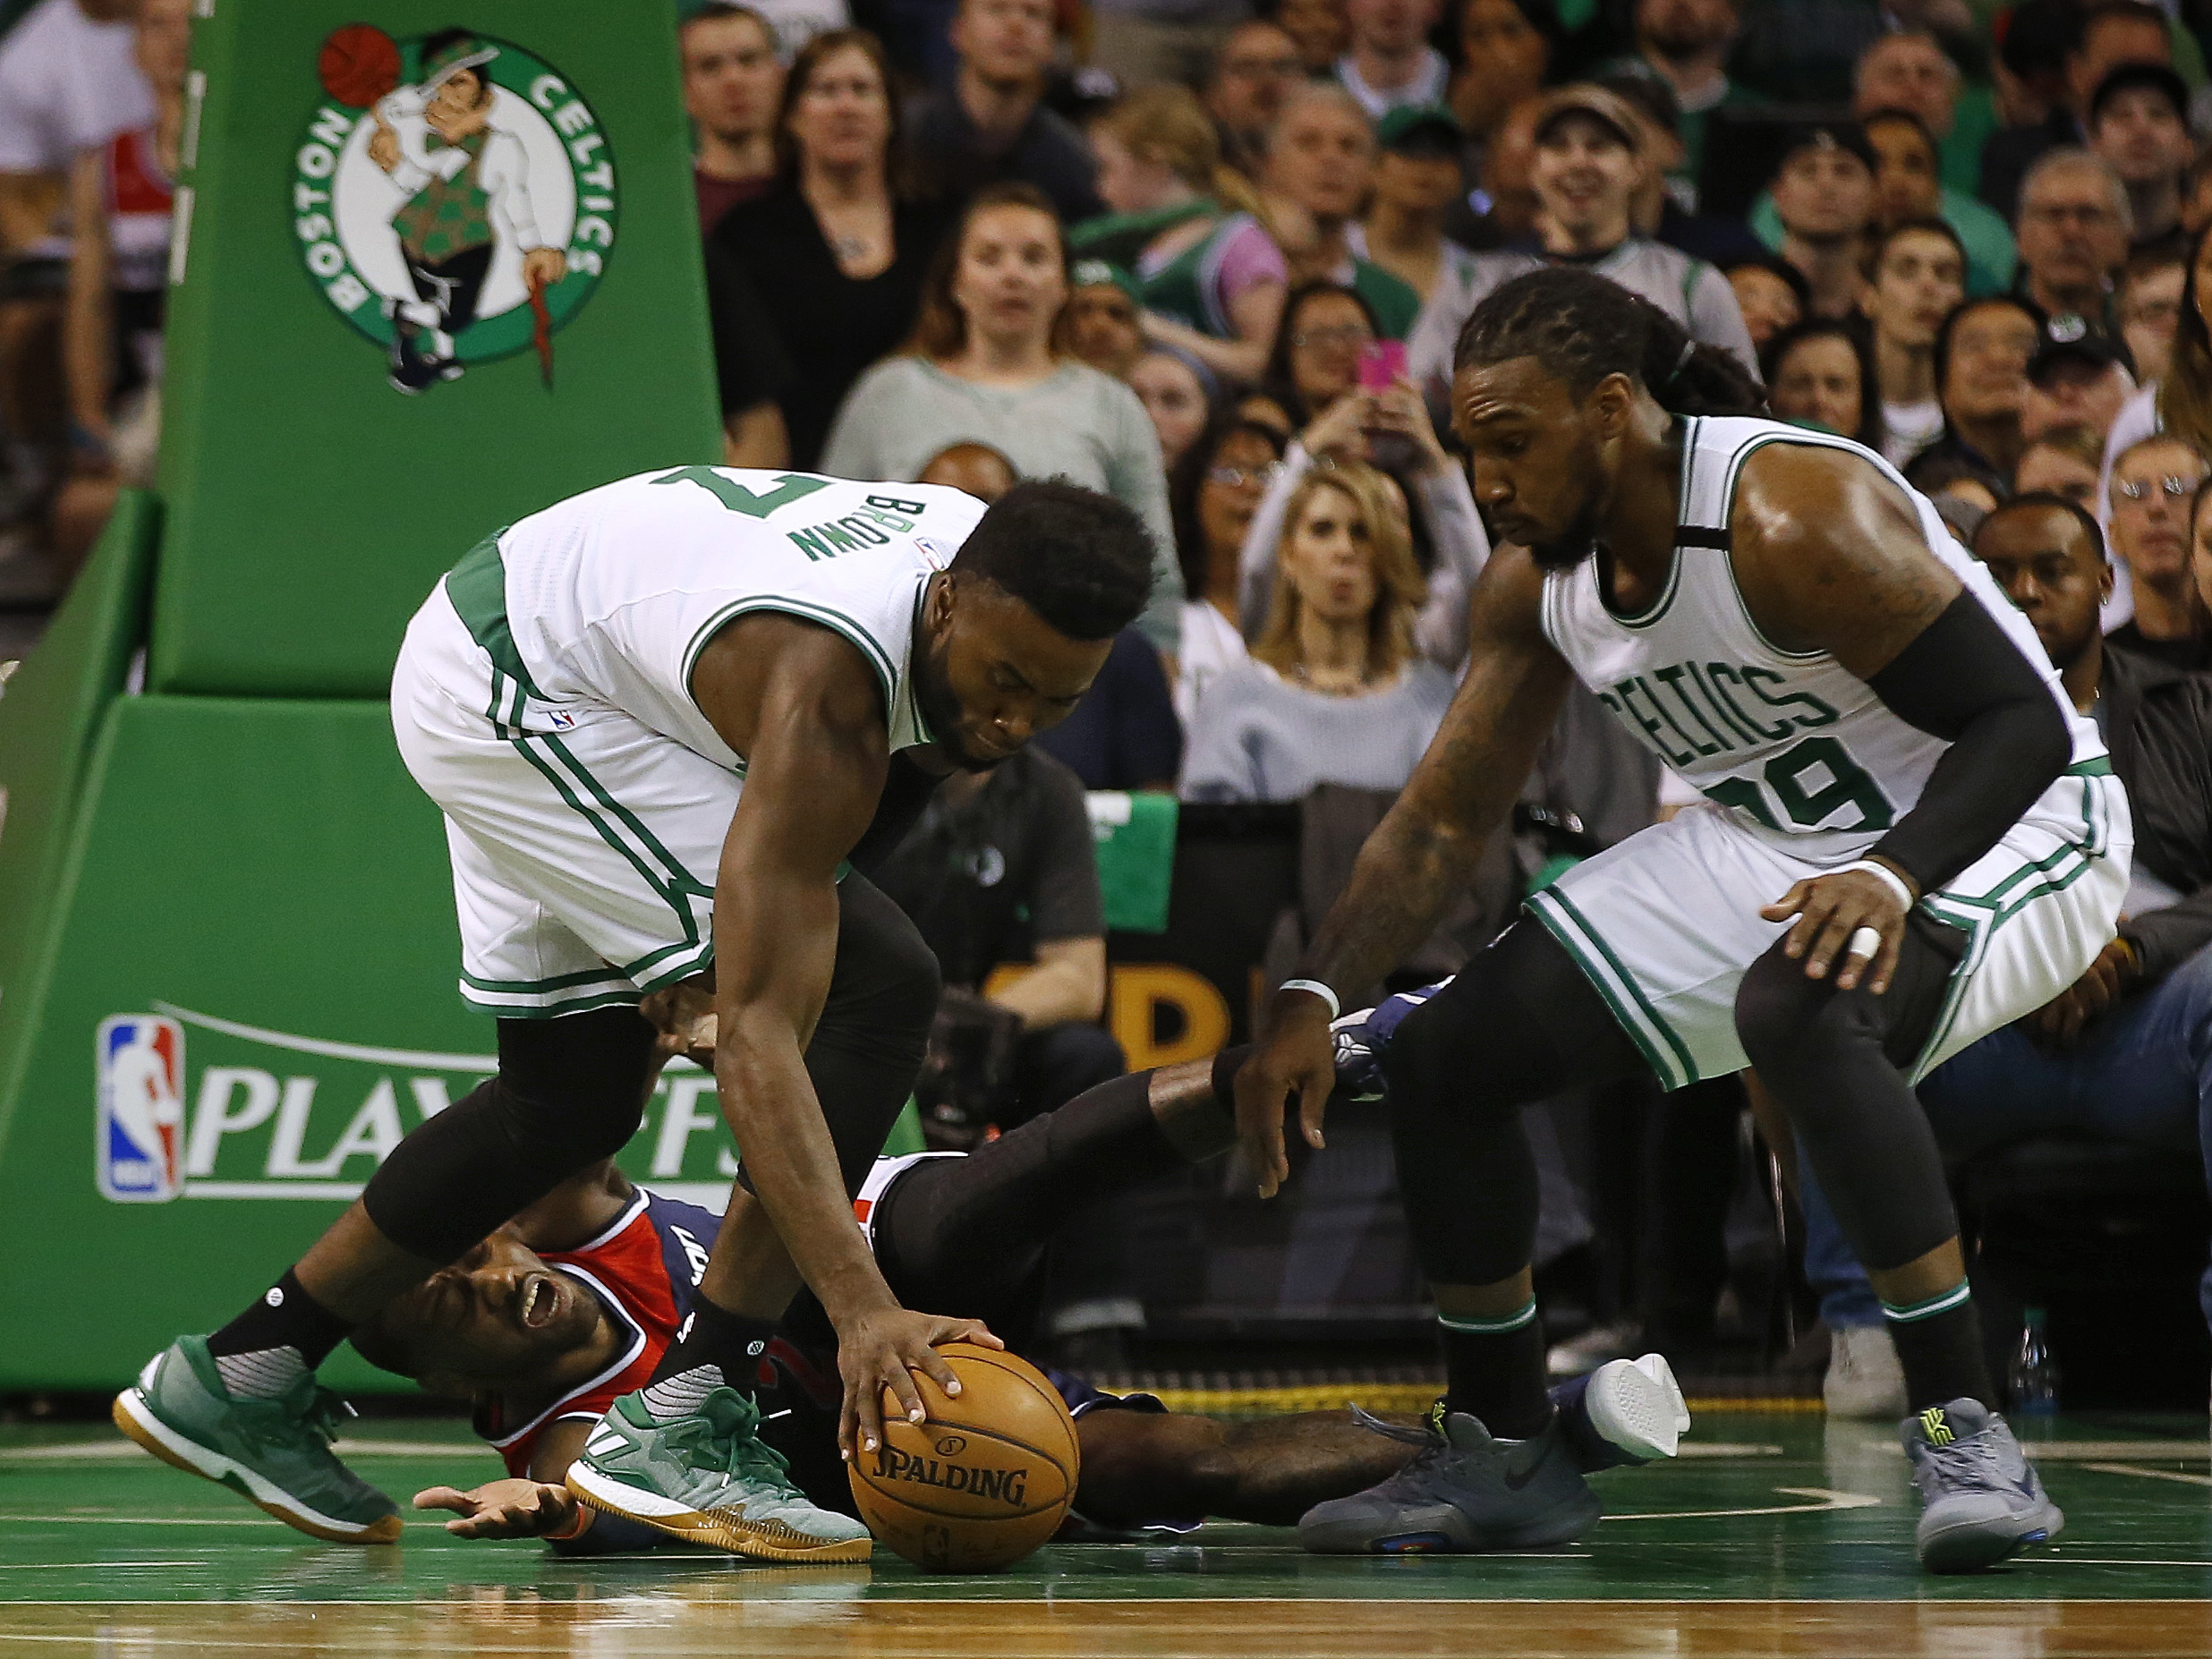 10037449-nba-playoffs-washington-wizards-at-boston-celtics